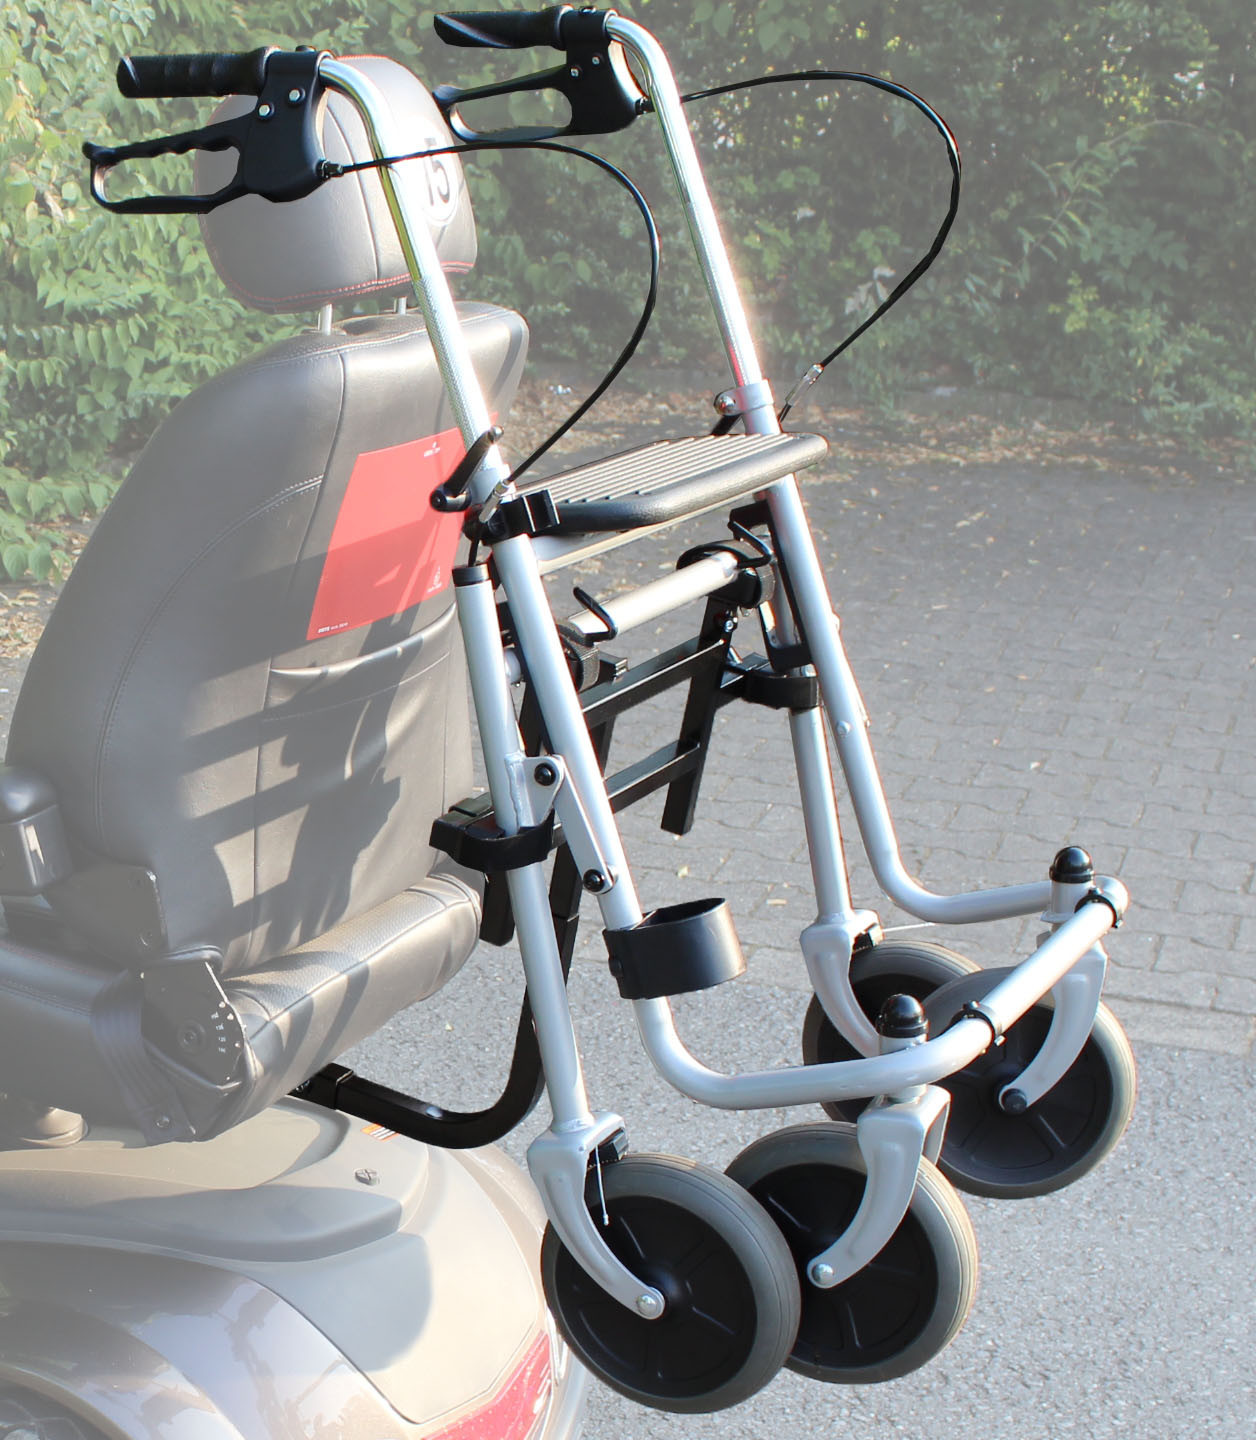 Rollator holder for mobility scooter, model SC-2